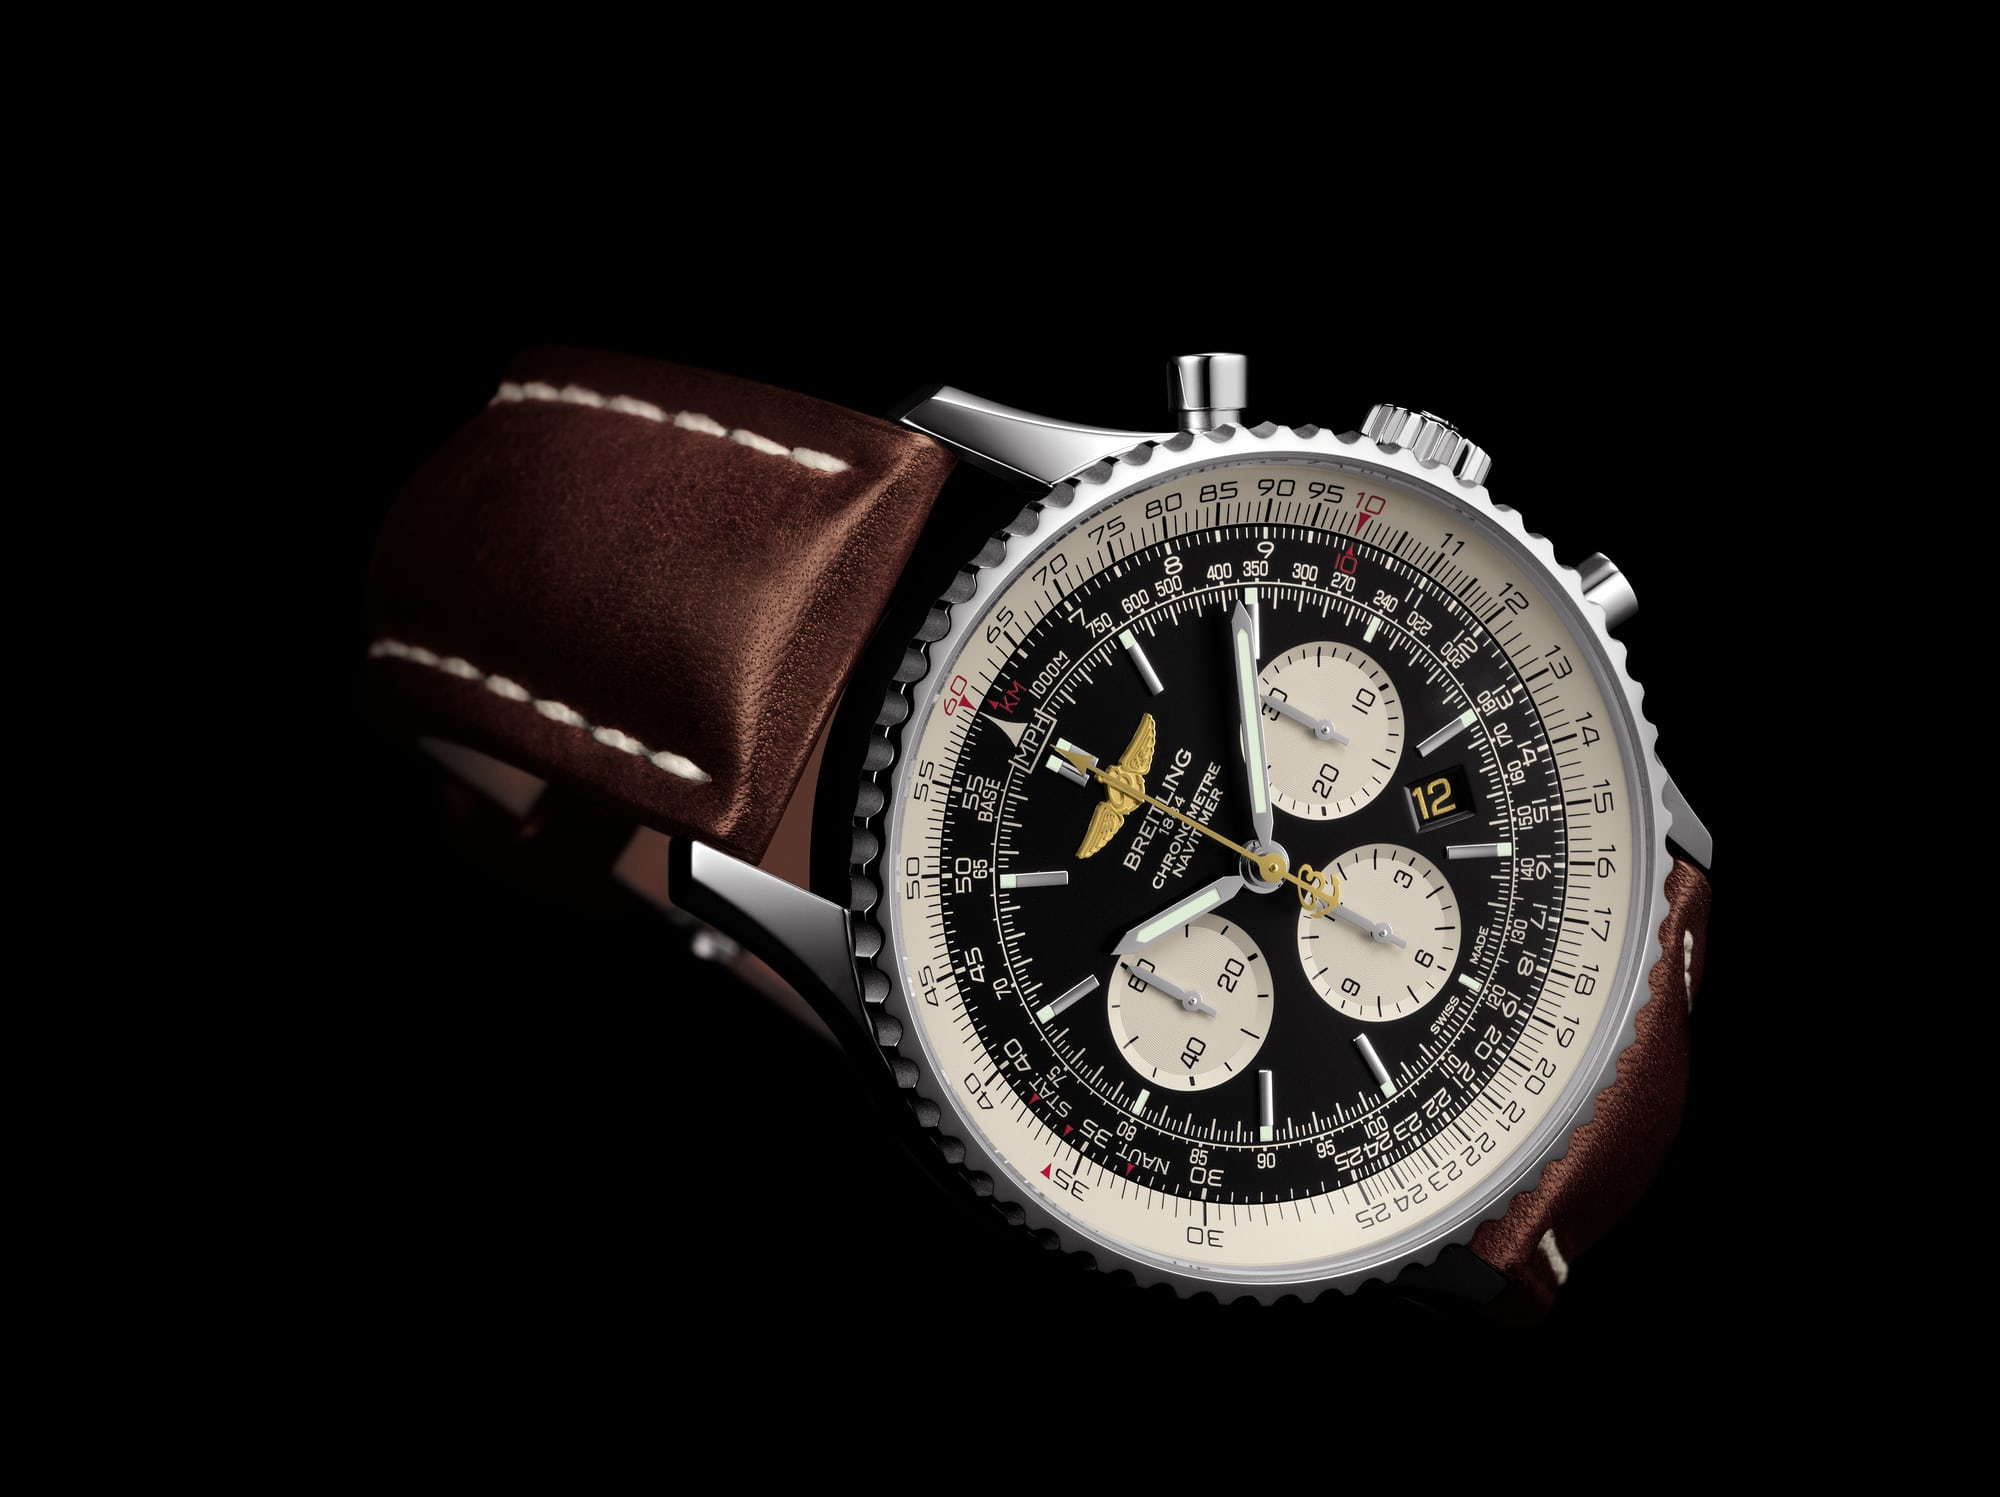 Breitling DC-3 Navitimer 01 limited edition. Dispatches: Breitling's DC-3 To Become Oldest Aircraft Ever To Circle The Earth Dispatches: Breitling's DC-3 To Become Oldest Aircraft Ever To Circle The Earth Breitling DC 3 Limited Edition Navitimer 3